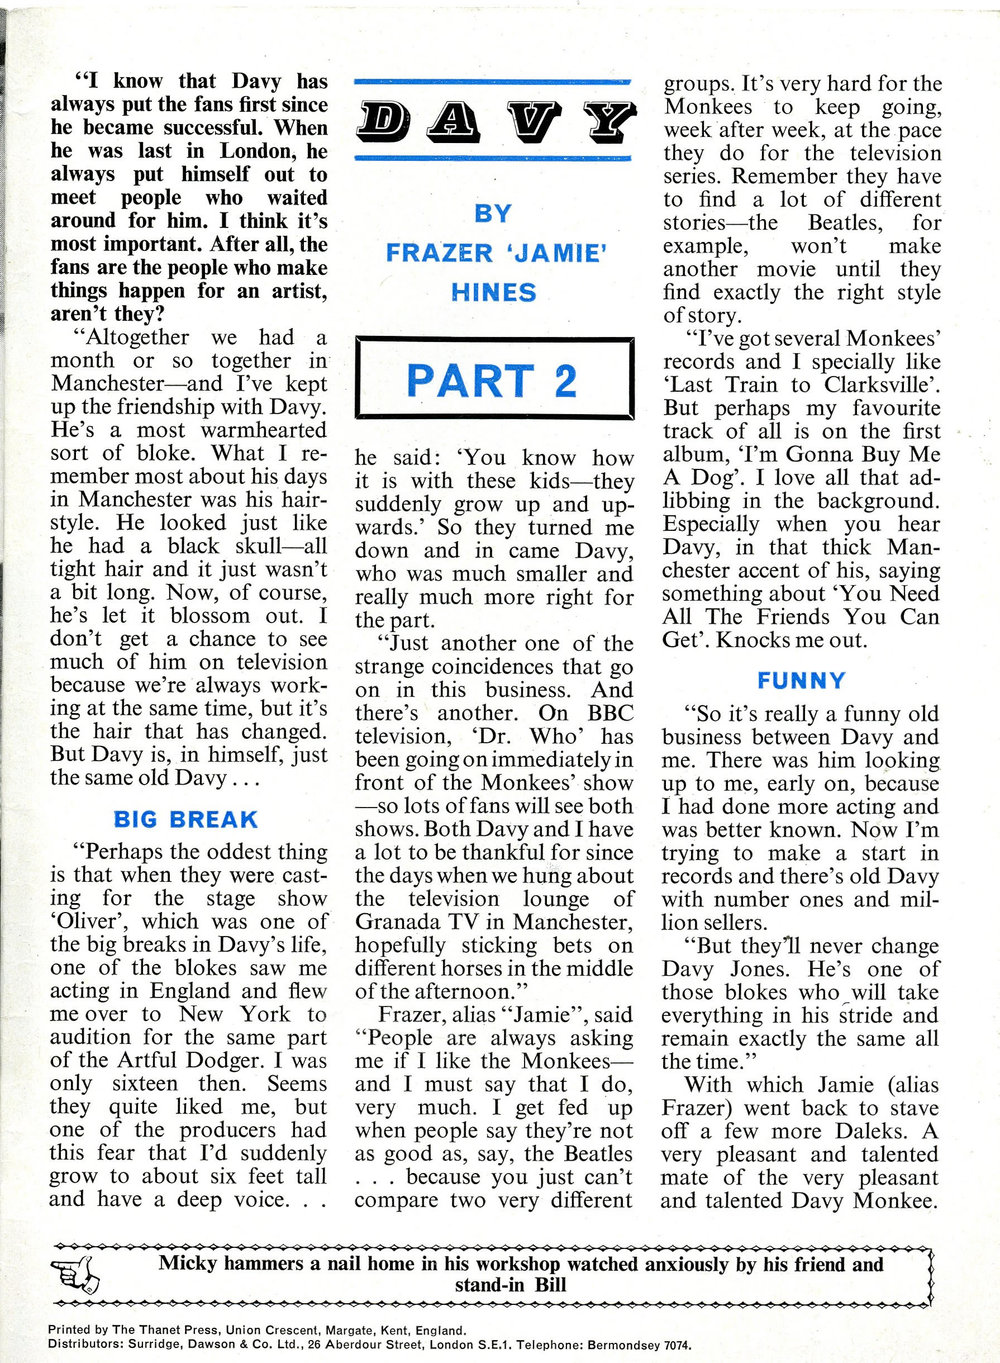 Interview with Frazer Hines (part 2) in The Monkees Monthly, number 12, December 1967